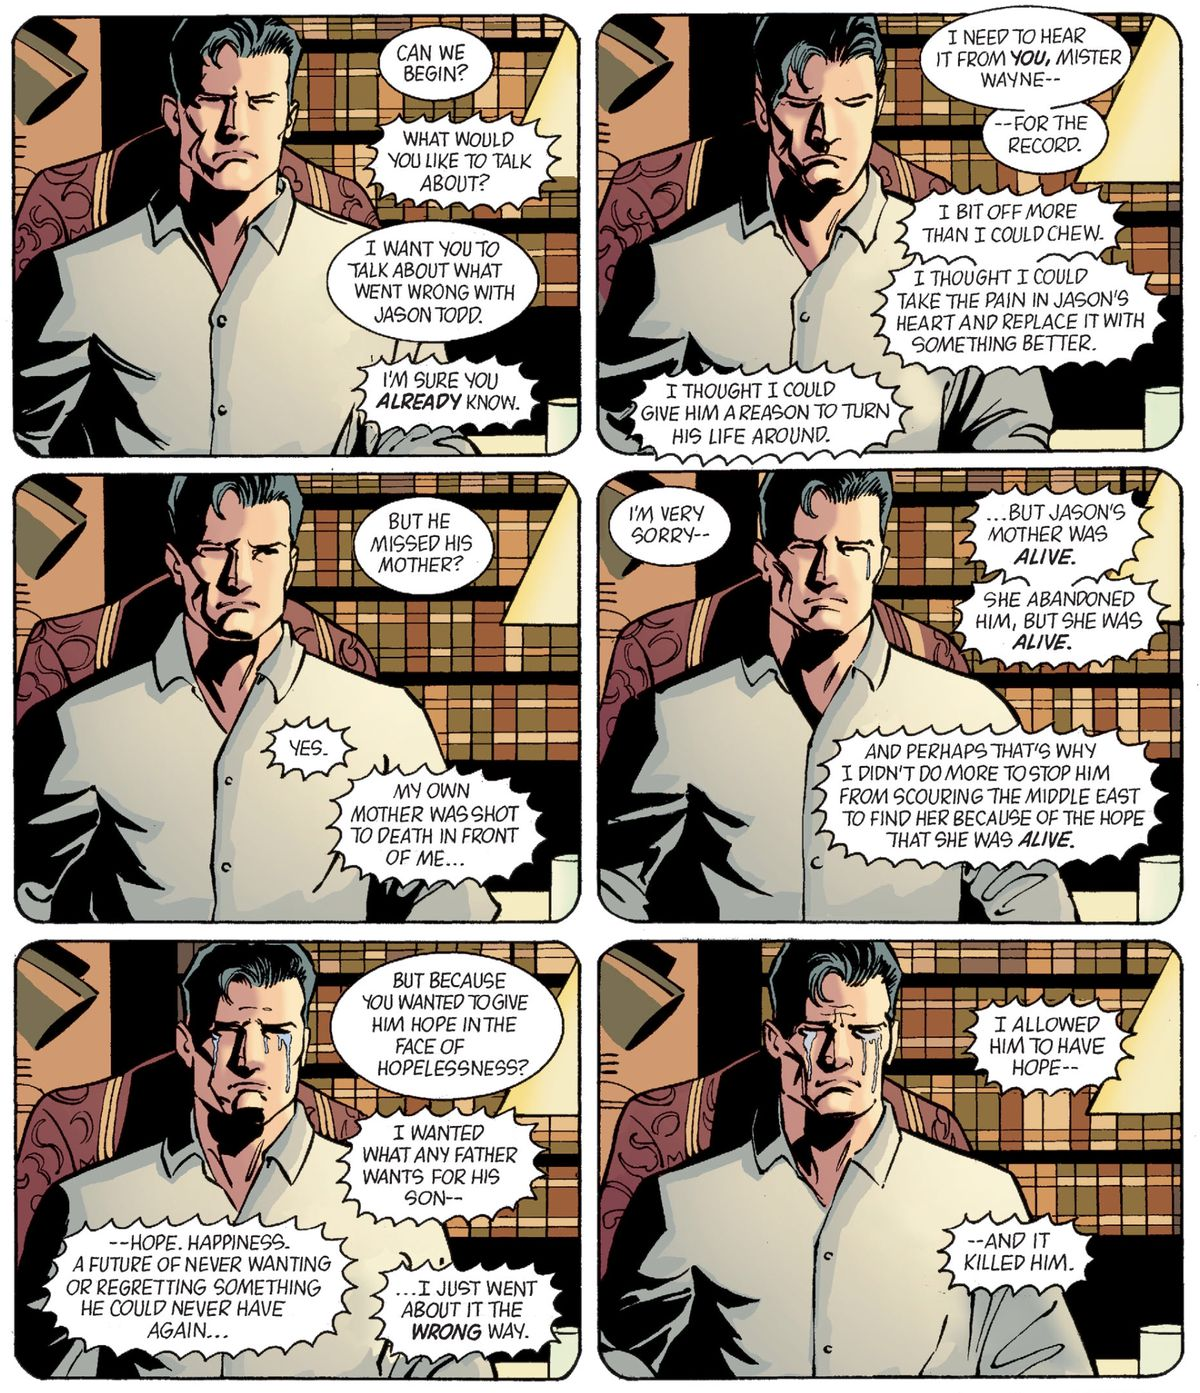 """Tears slide down Bruce Wayne's face as he says that he allowed Jason Todd to have hope, """"and it killed him,"""" in Batman: Gotham Knights #45, DC Comics (2003)."""